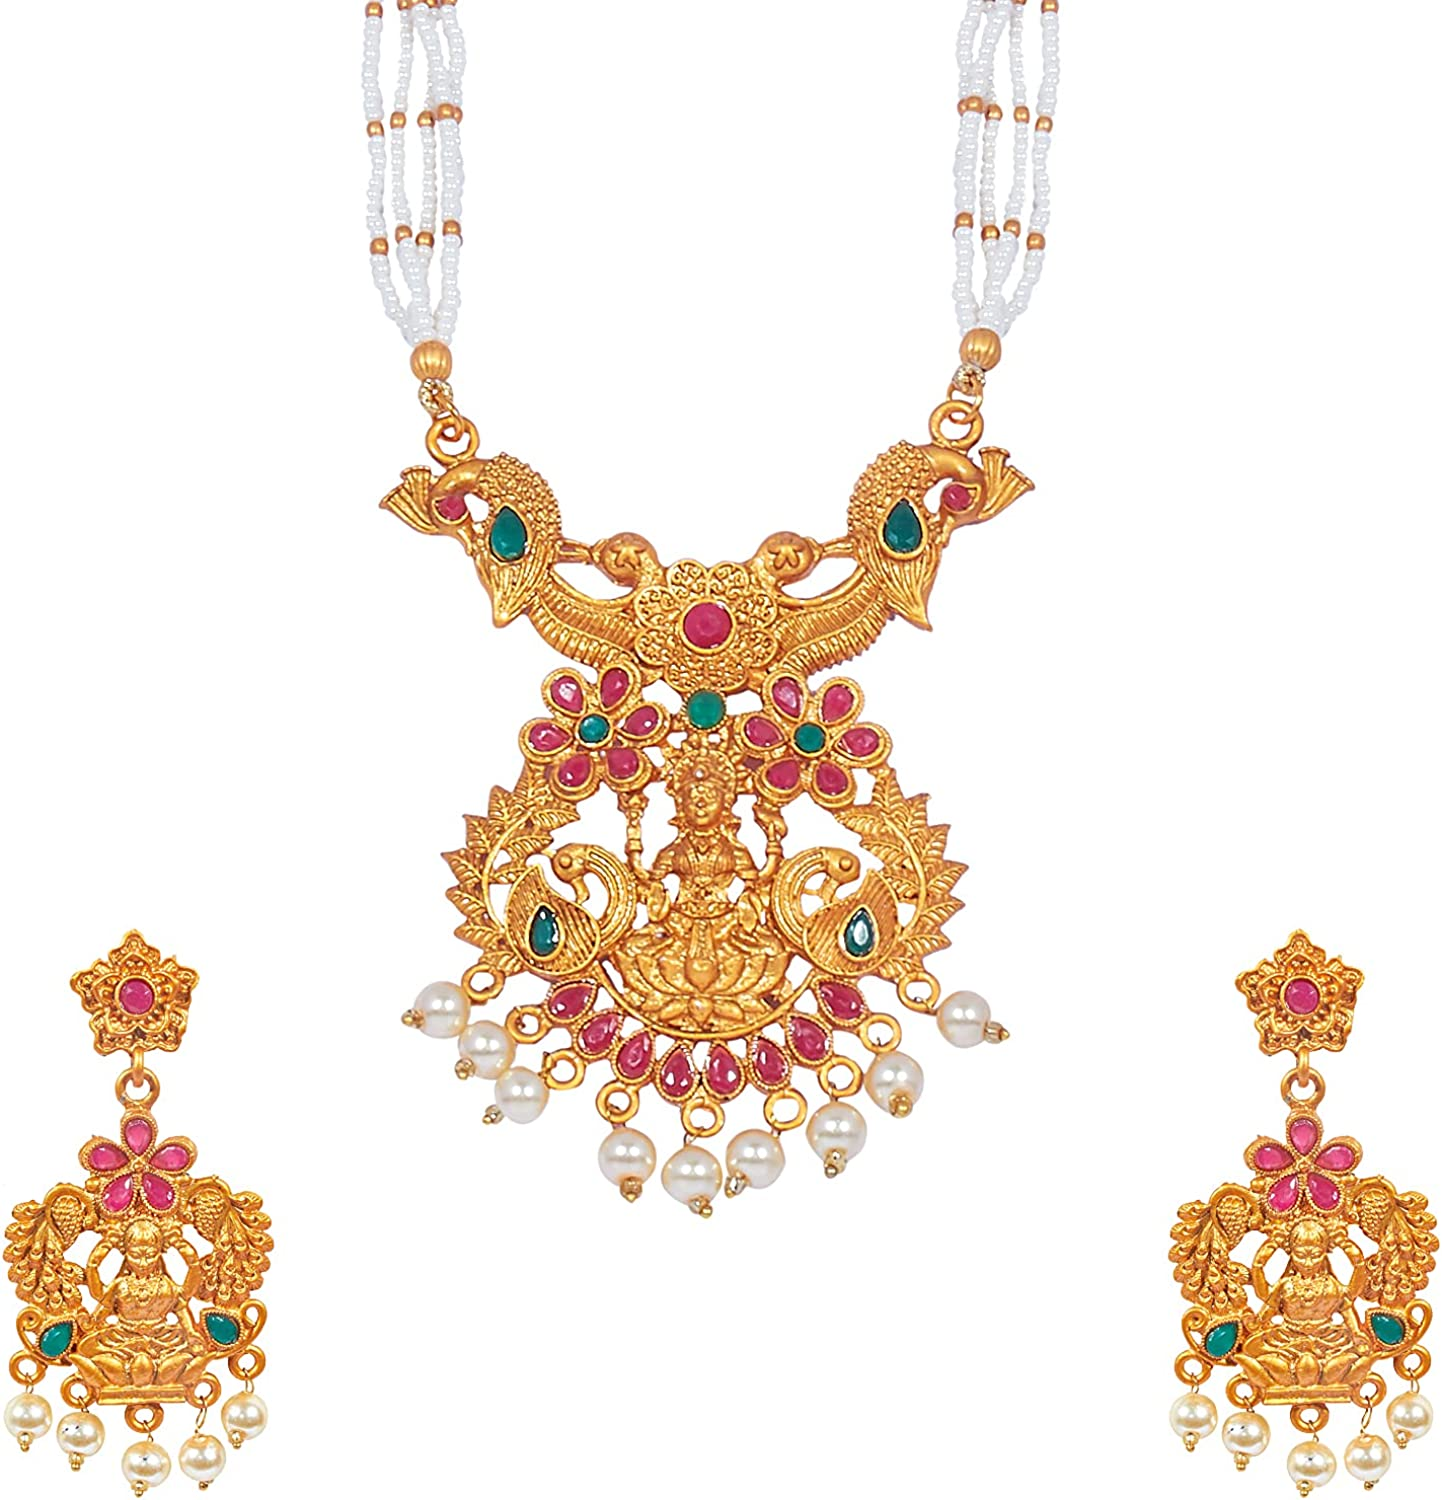 Bodha Tradtional Indian Handcrafted Antique Gold Plated Temple Jewellery Combo Bridal Dulhan Necklace Set With Matching Earring & Pearls For Women (SJ_2942)